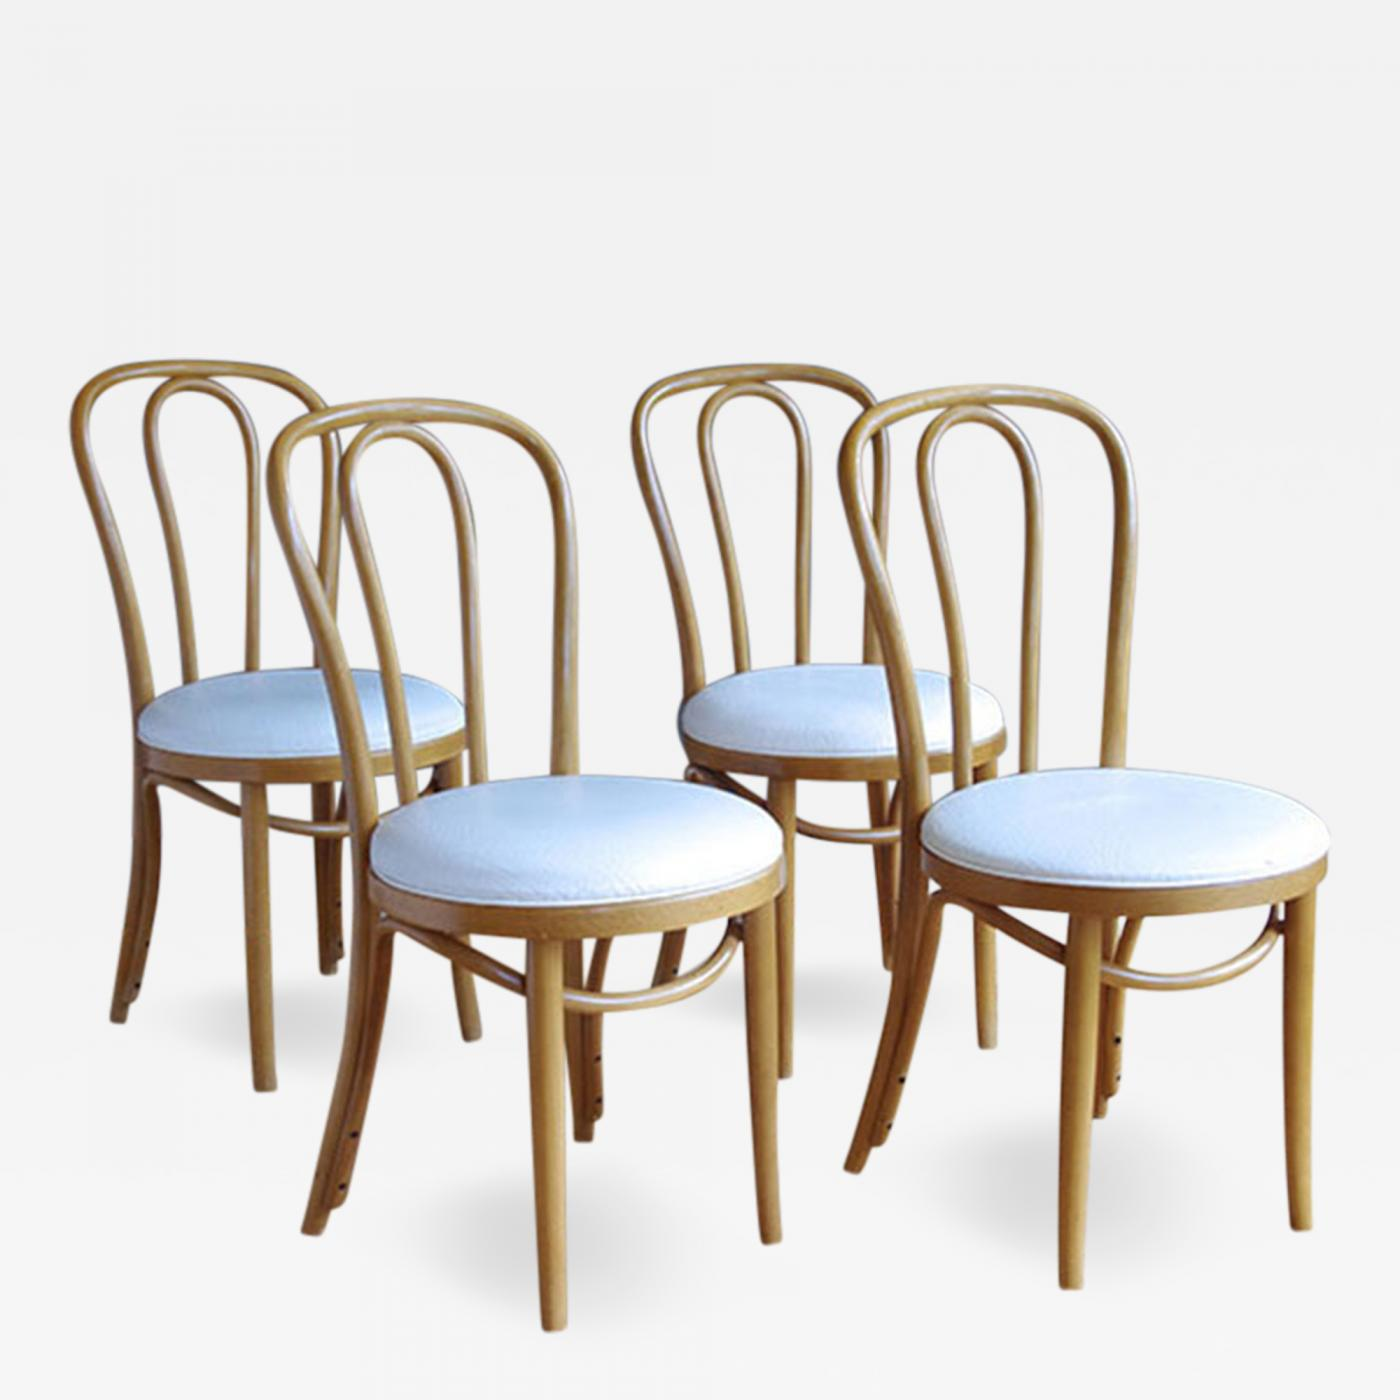 B Brody Seating pany Brody Bentwood Cafe Chairs